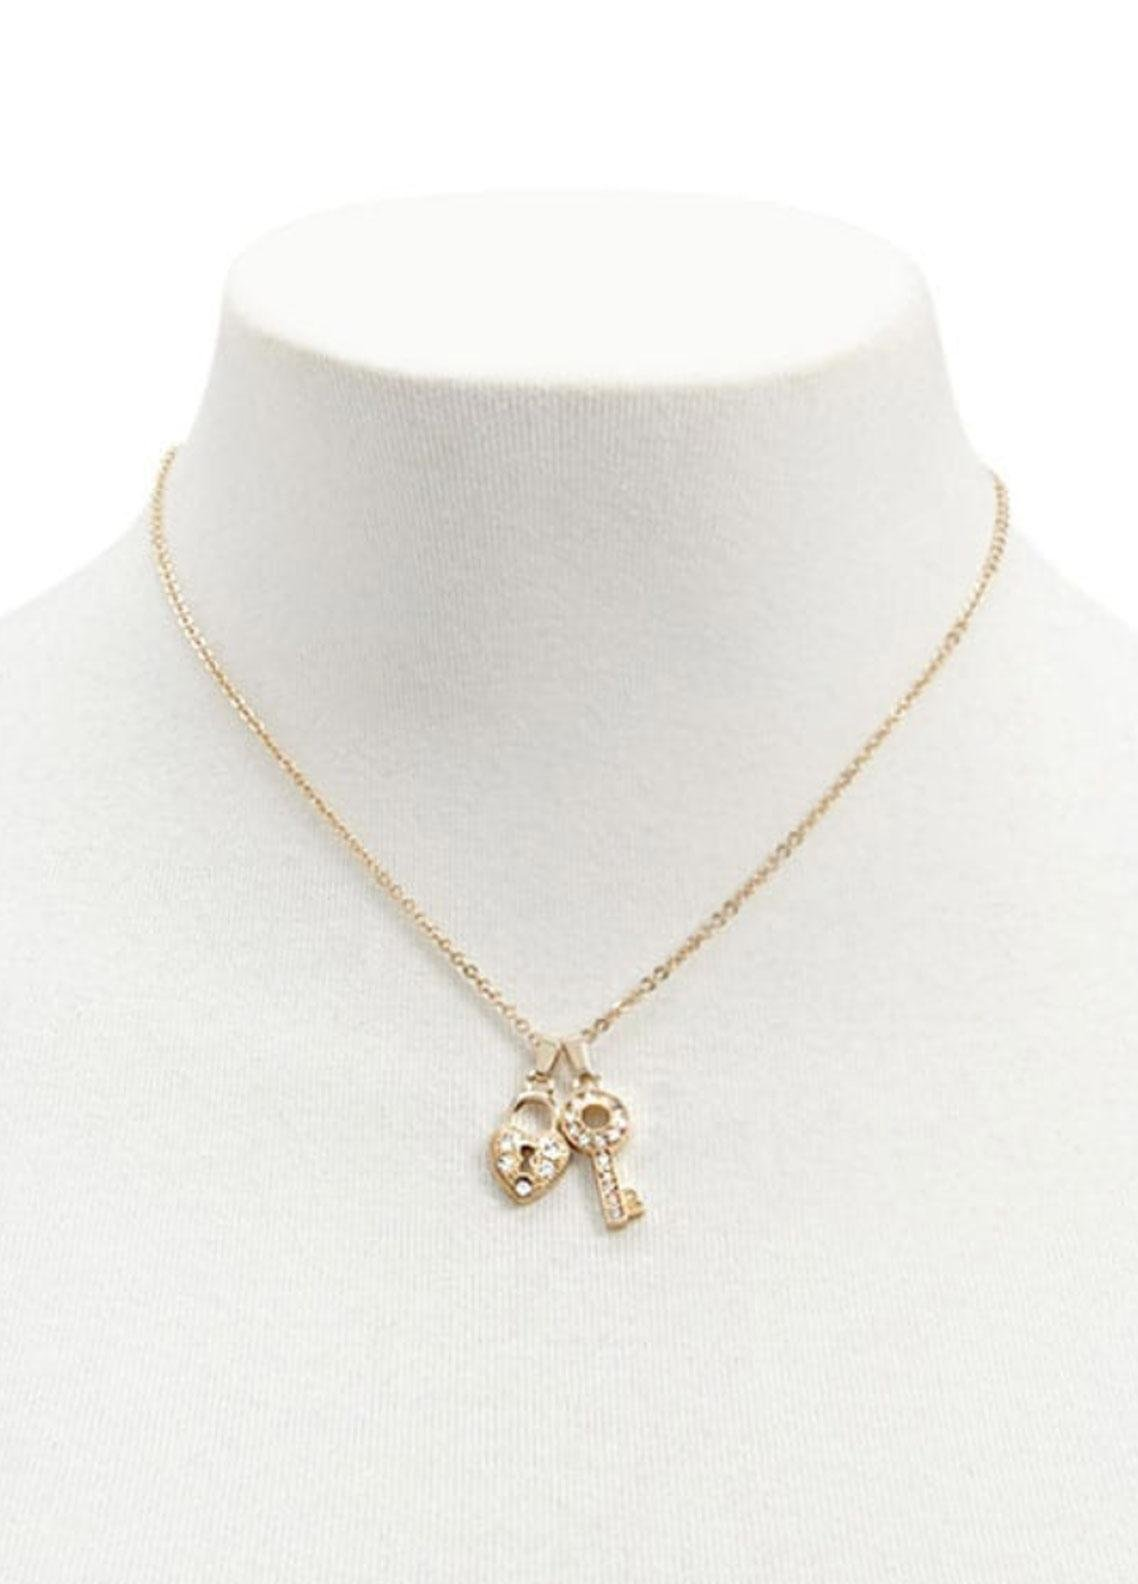 Forever21 Lock & Key Charm Necklace - Ladies Jewellery